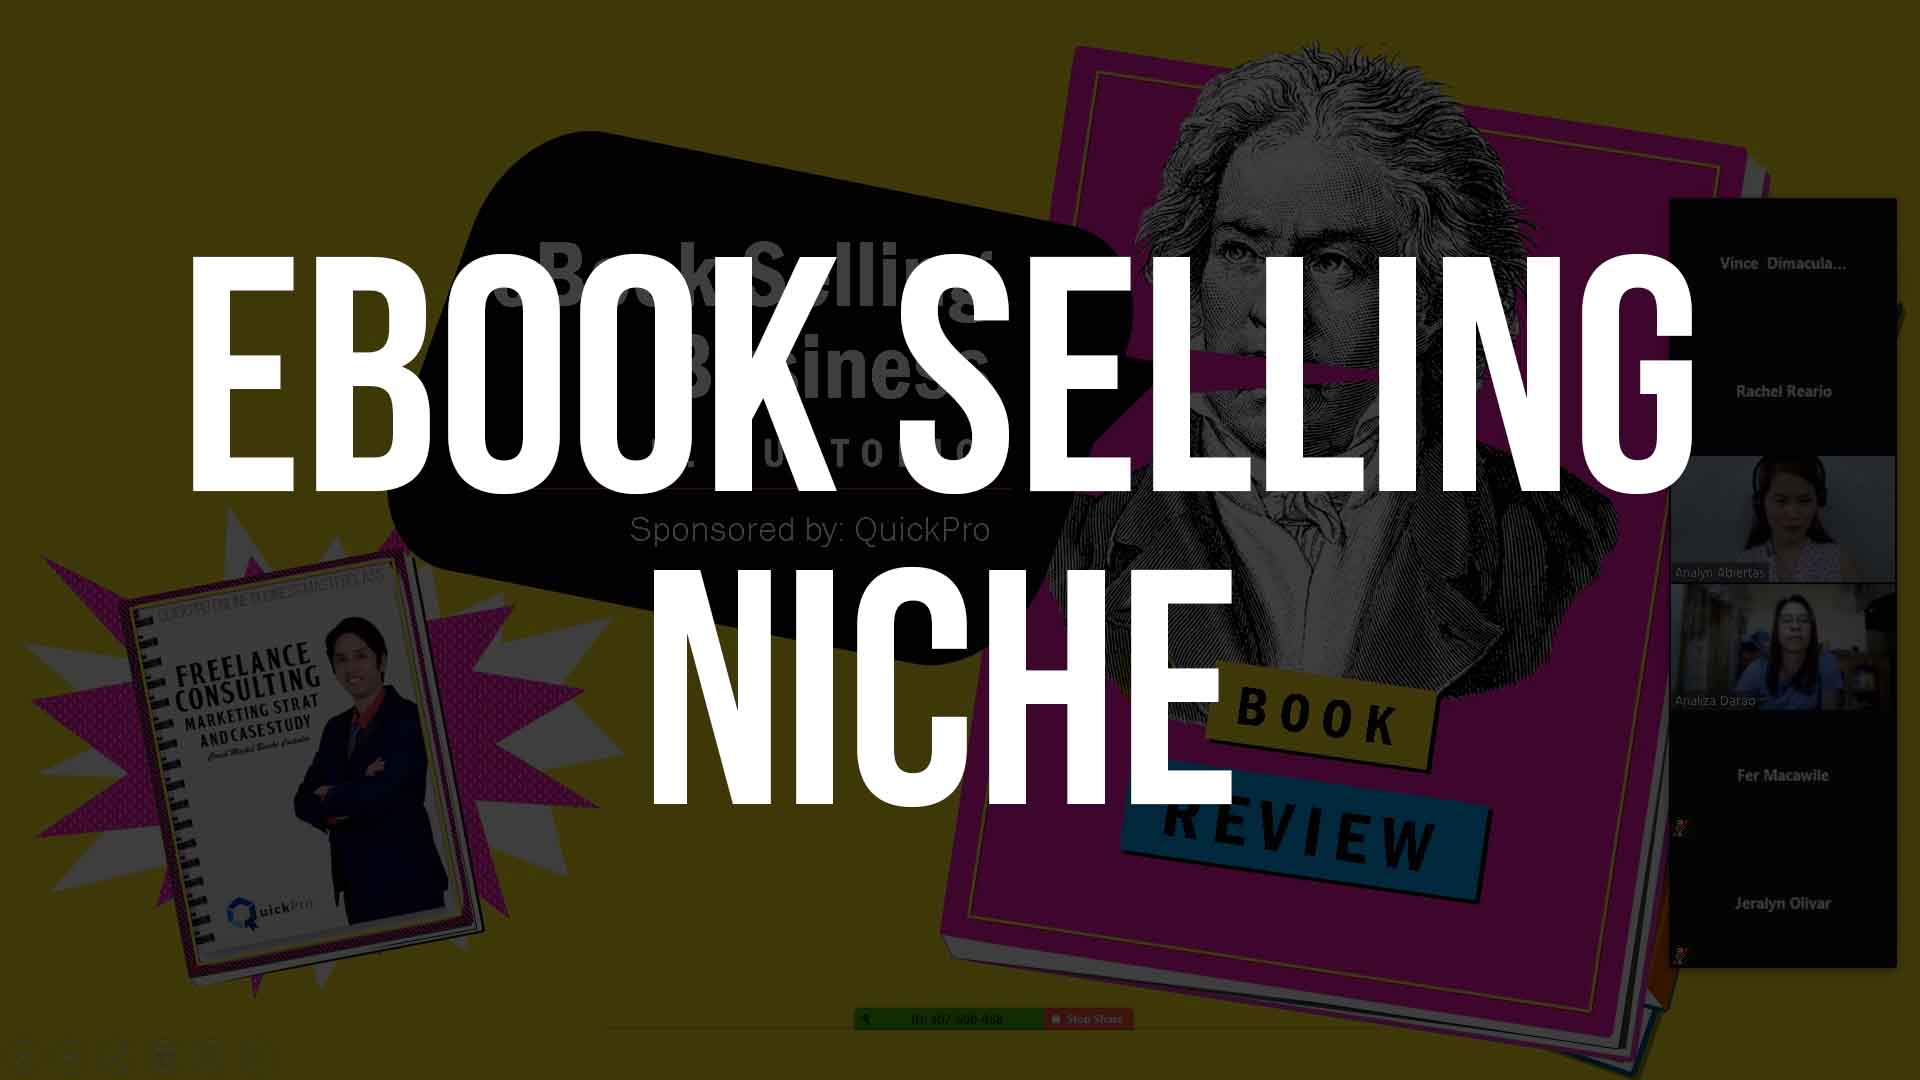 ebook selling niche